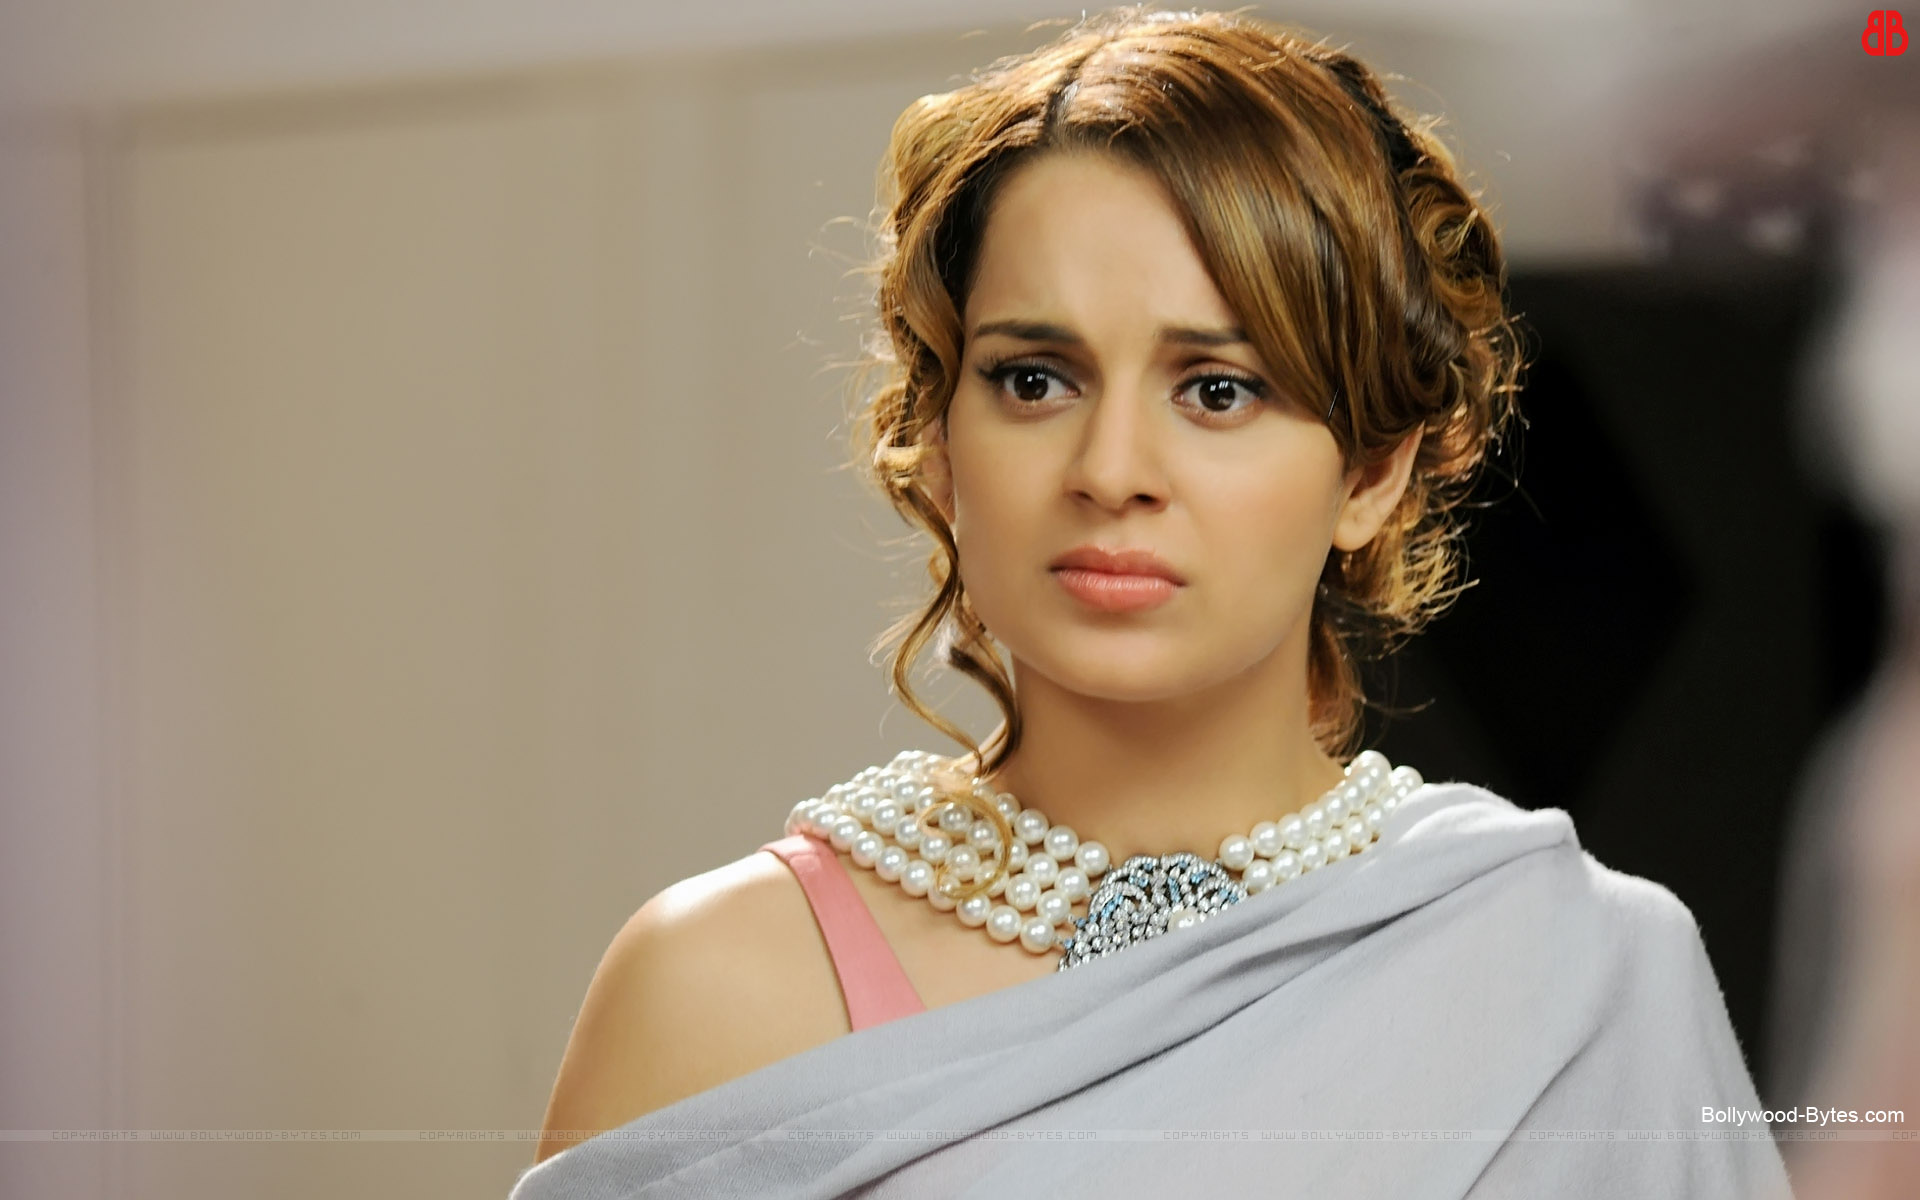 http://3.bp.blogspot.com/-2wh-3rOJv74/US8bNak6CaI/AAAAAAAAcGg/AQc-6mO_N9g/s1920/I-Love-New-Year+-Hot-Kangna-Ranaut-HD-Wallpaper-06.jpg